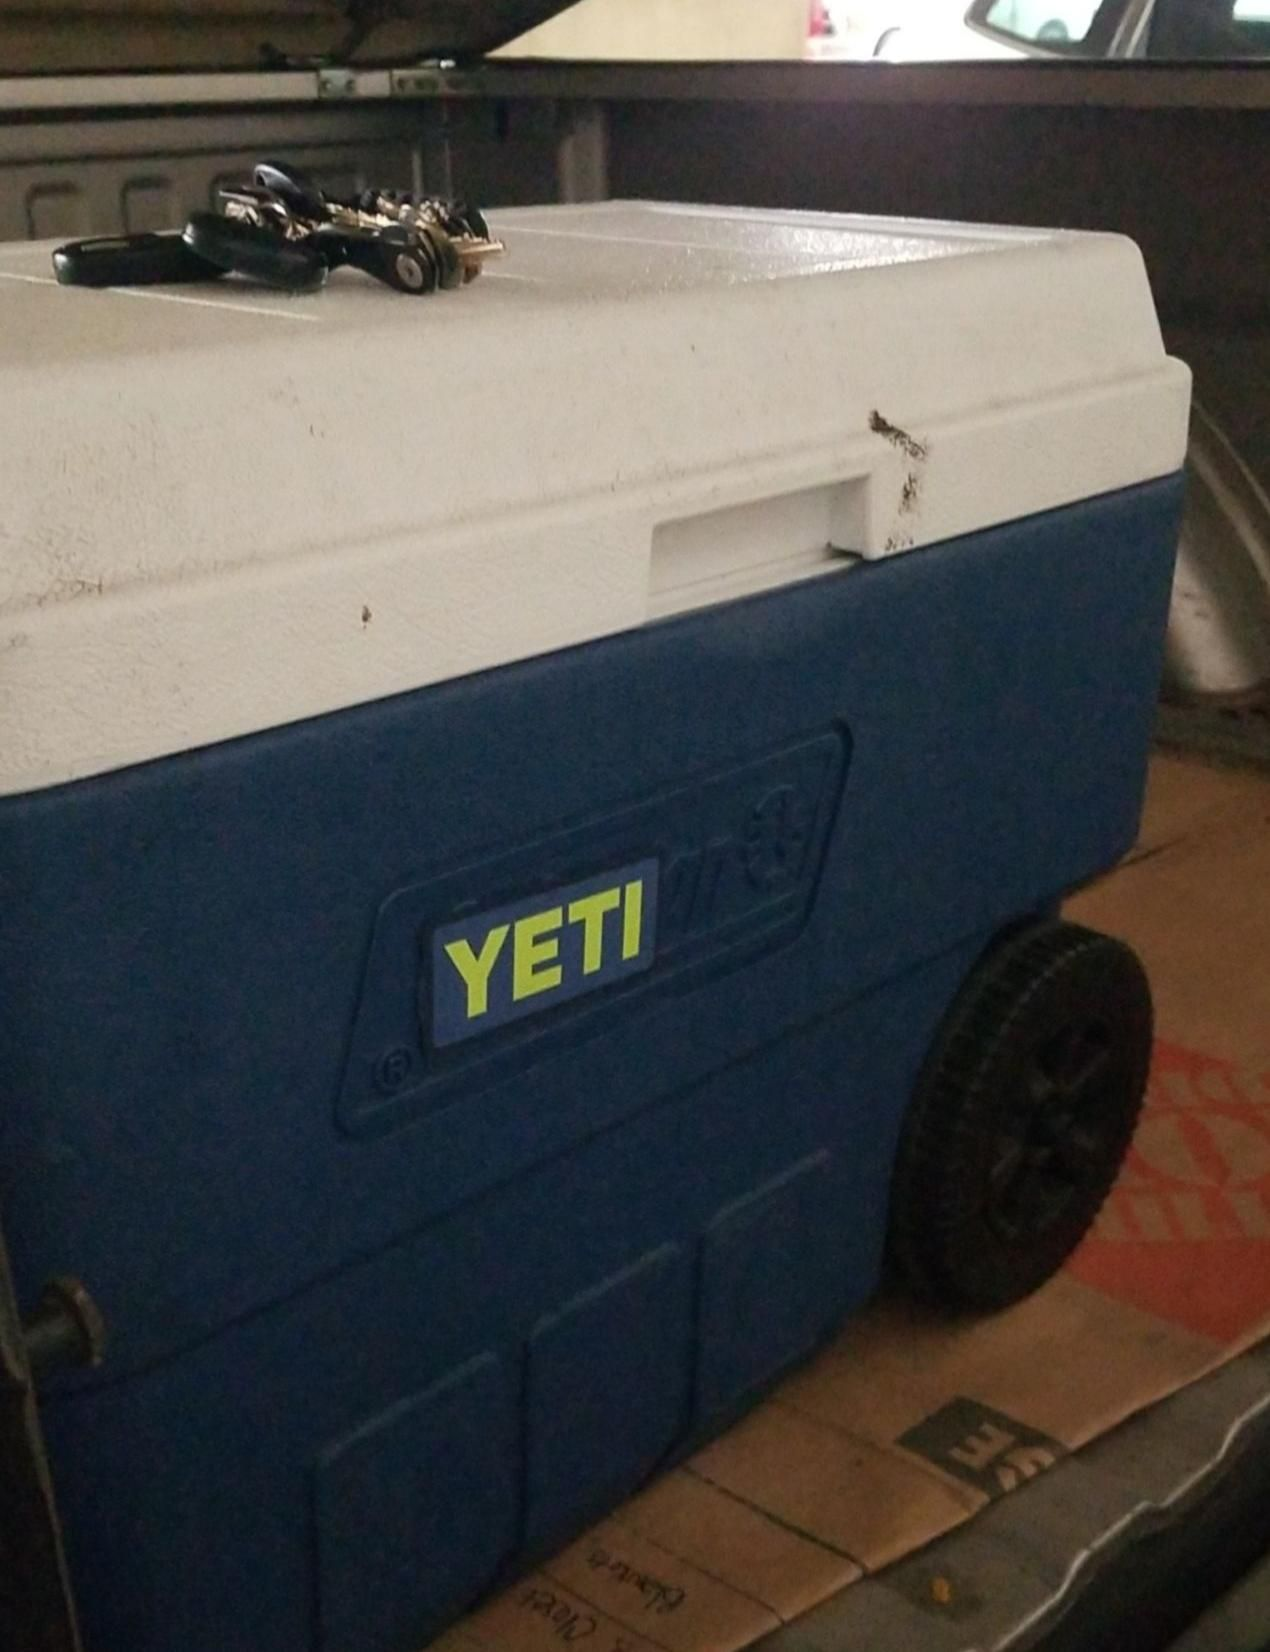 With summer coming on thought I'd upgrade the cooler ...